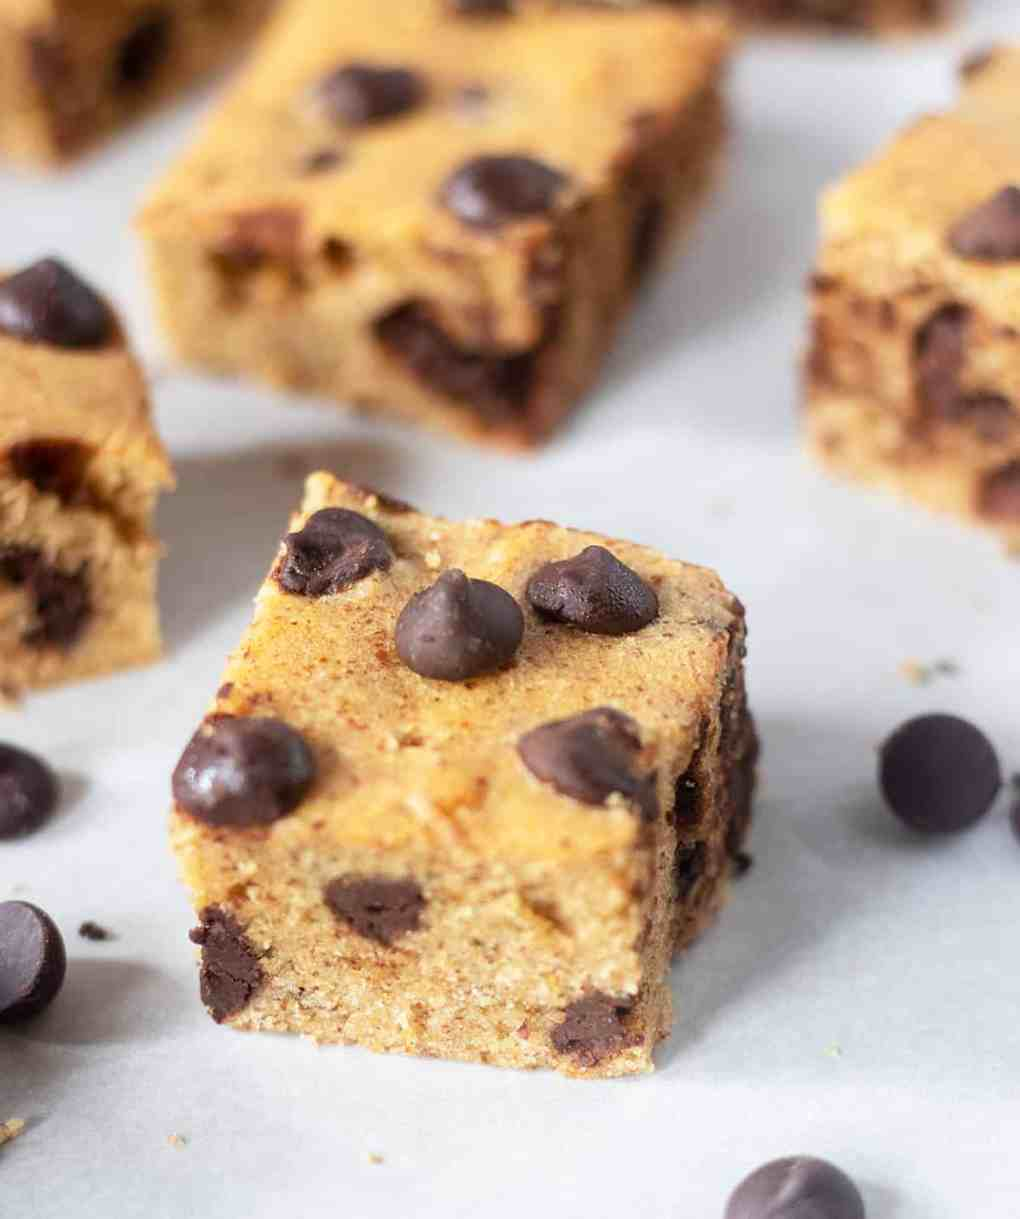 Chocolate Chip Cookie Bars baked and cut on parchment paper